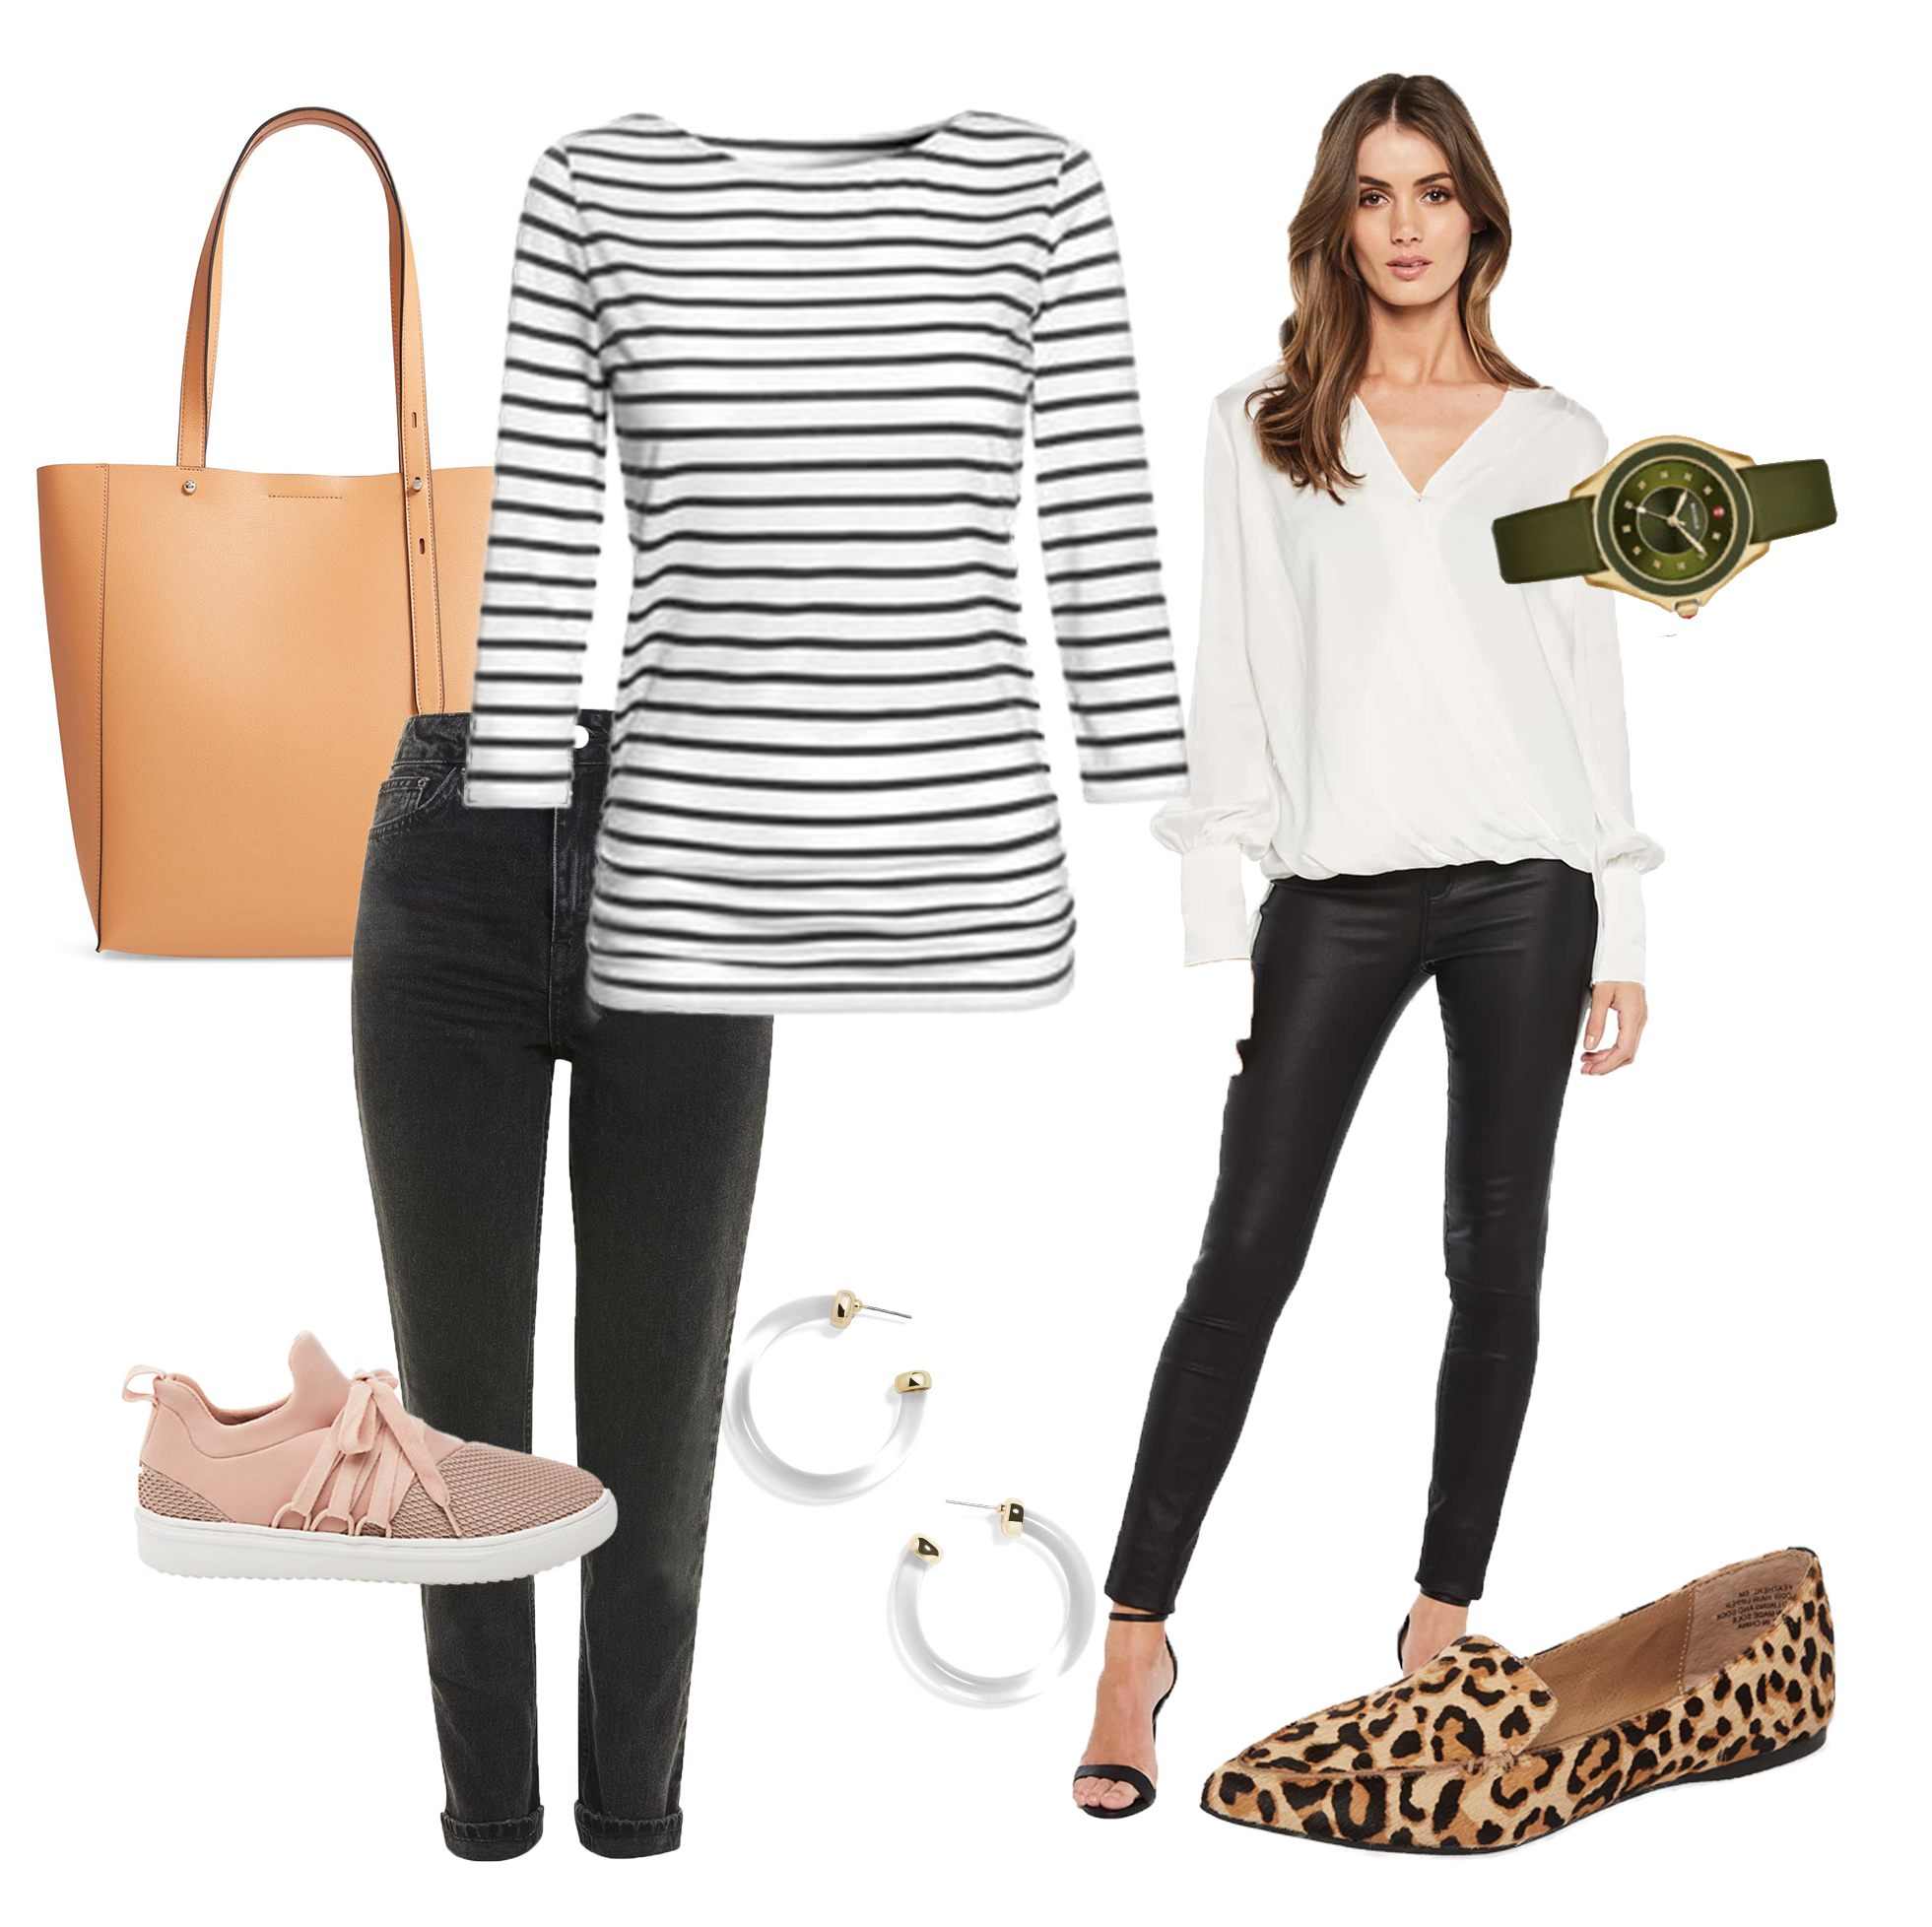 Everyday Casual - Go-To Pieces include: -Casual cotton/knit tops-Sweaters-Dark fitted pants/jeans-Solid colors or simple, uniform patterns-Comfortable, trendy shoes-Unique cuts and styles